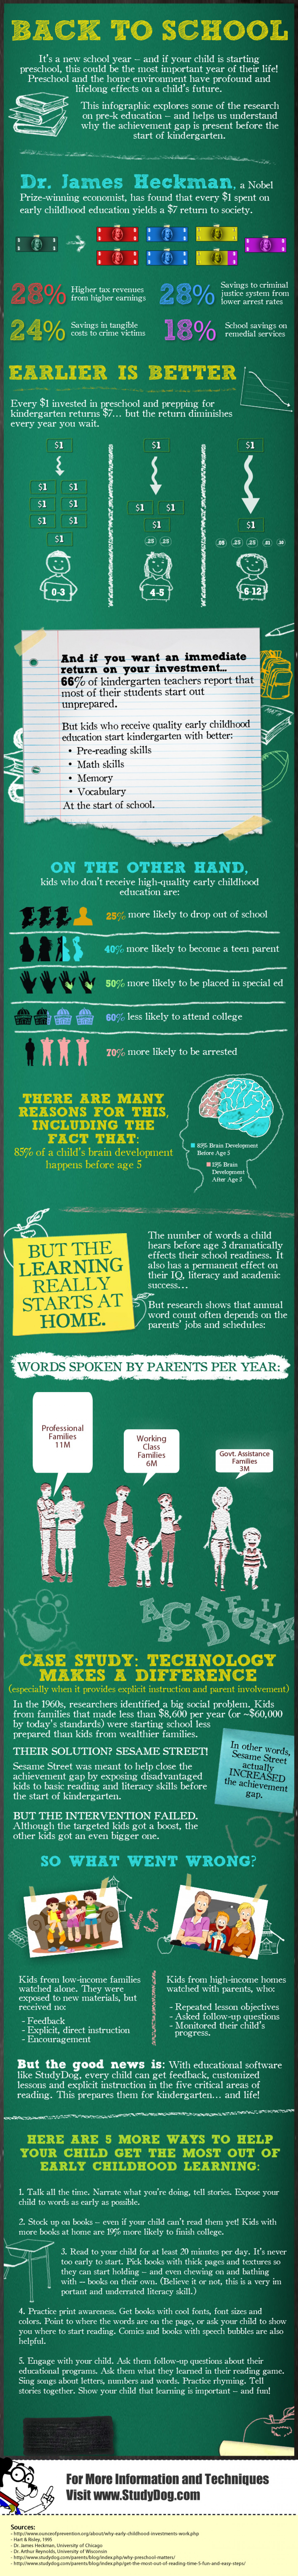 Back to School - PreK, Kingergarten Infographic